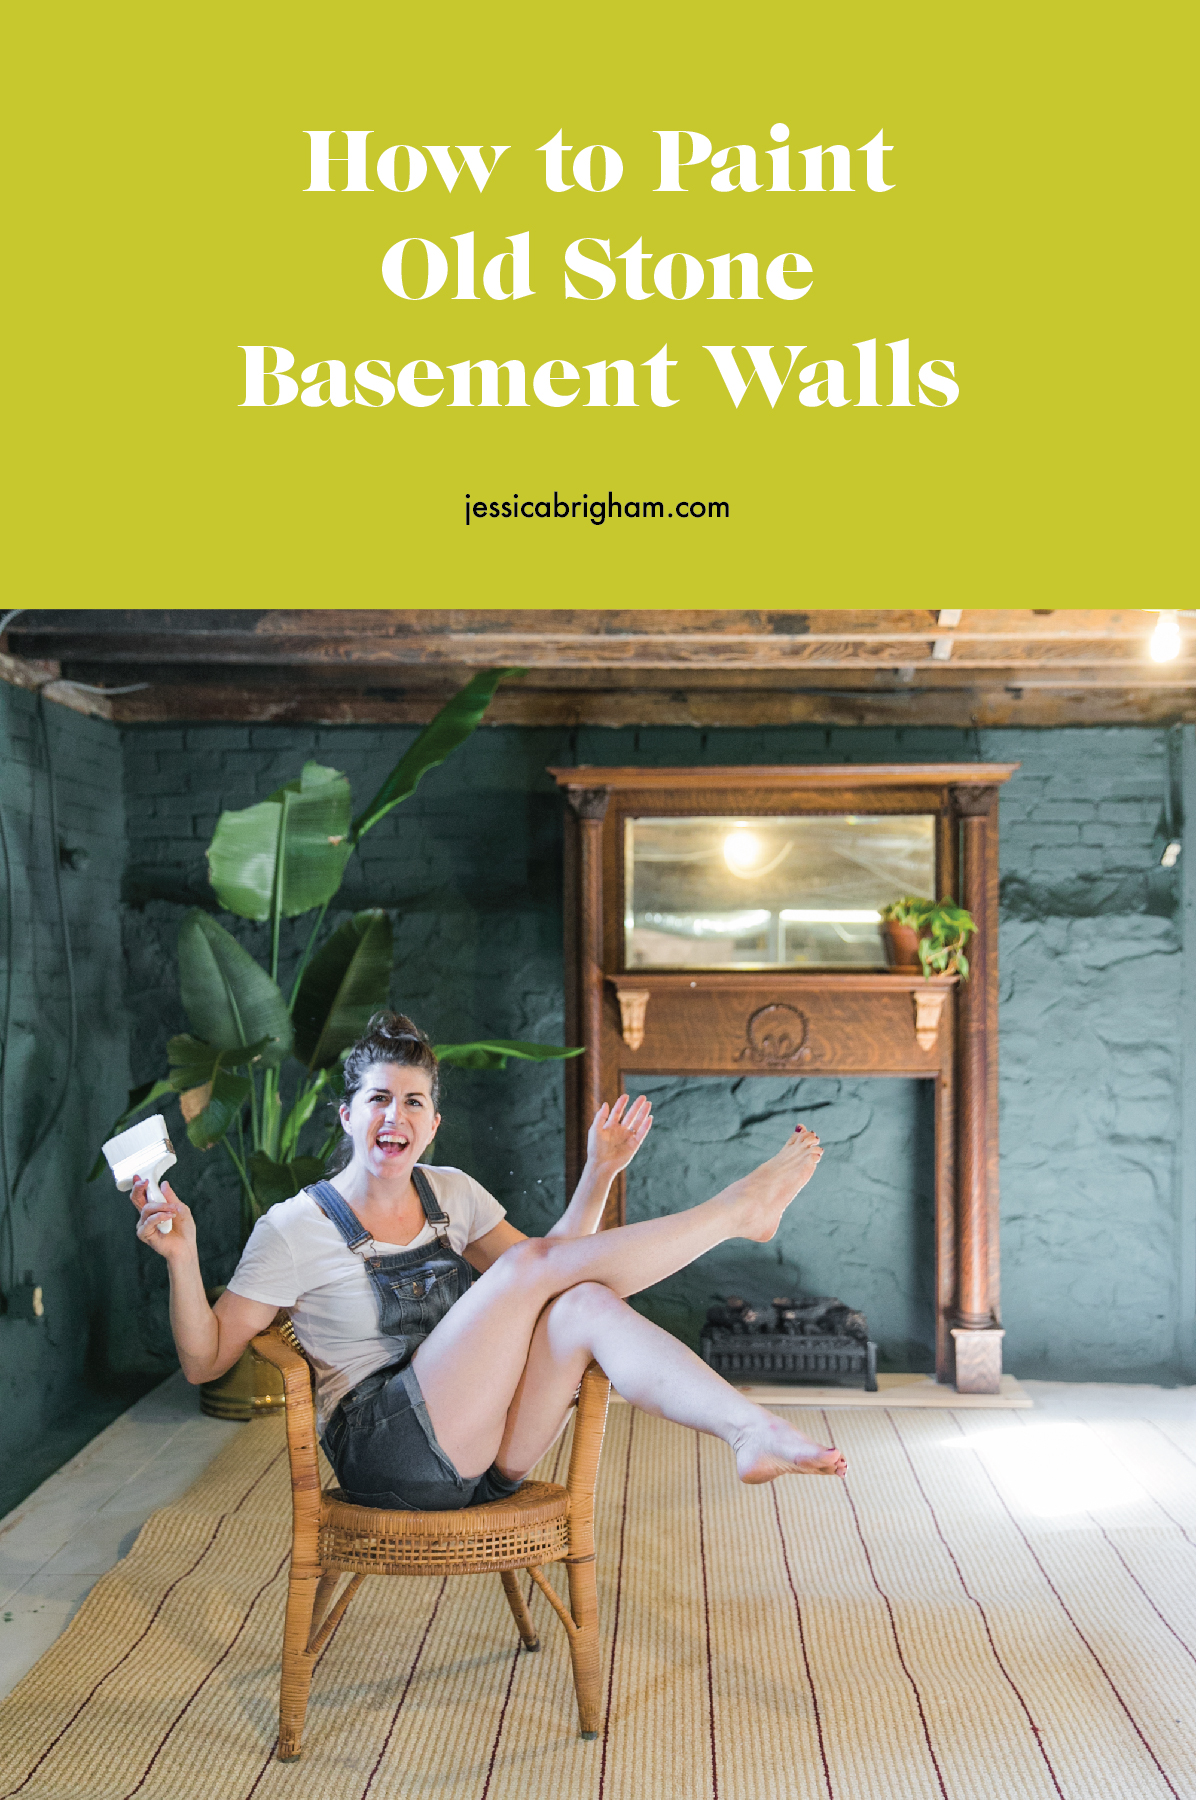 How to Paint Old Stone Basement Walls | DRYLOK | Basement Remodel | Basement Restoration | DIY at Home | VIDEO TUTORIAL | JessicaBrigham.com